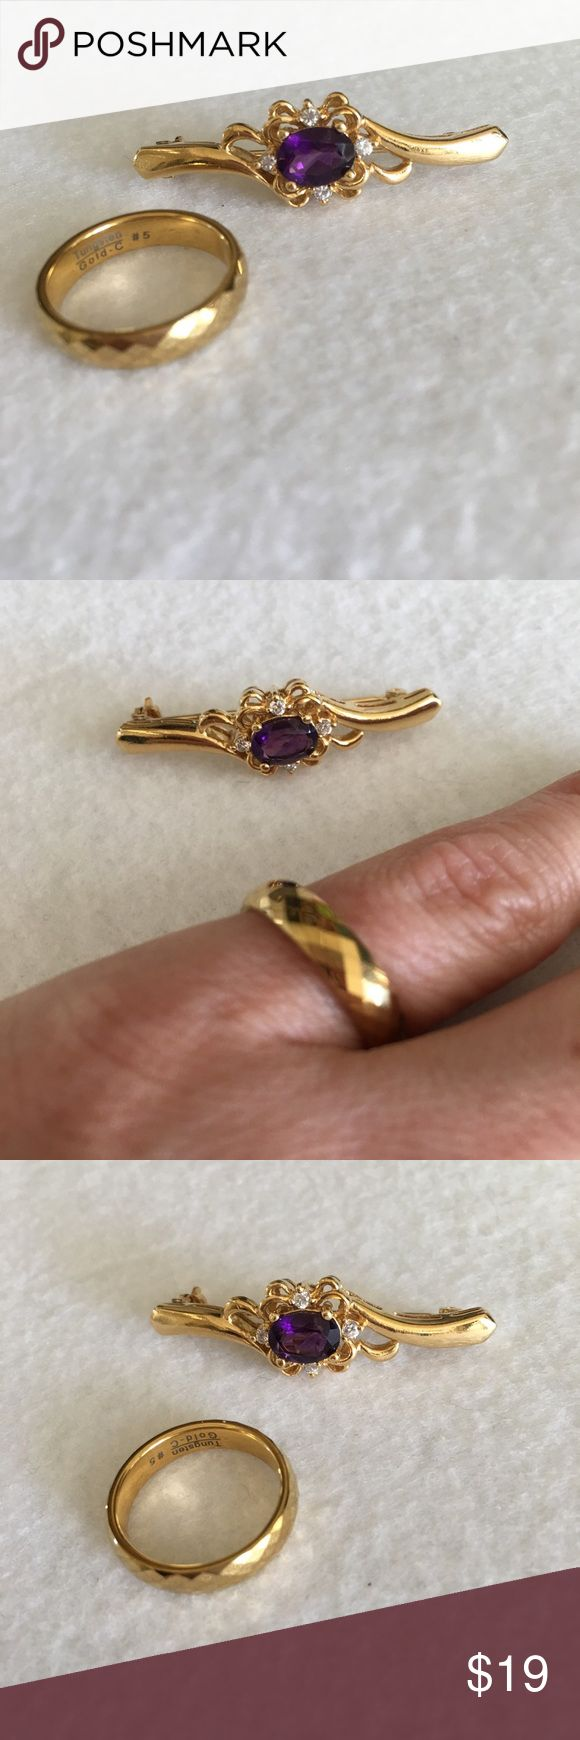 "Gold ring & pin set amethyst Tungsten faceted Ring & pin set ✨ Tungsten size 5 gold plated faceted stamped ring ✨ gold plated pin with amethyst and 4 cz cubic zirconia diamonds ✨ pin is slightly over 1.5"" long ✨ so pretty ! Tungsten Jewelry Rings"